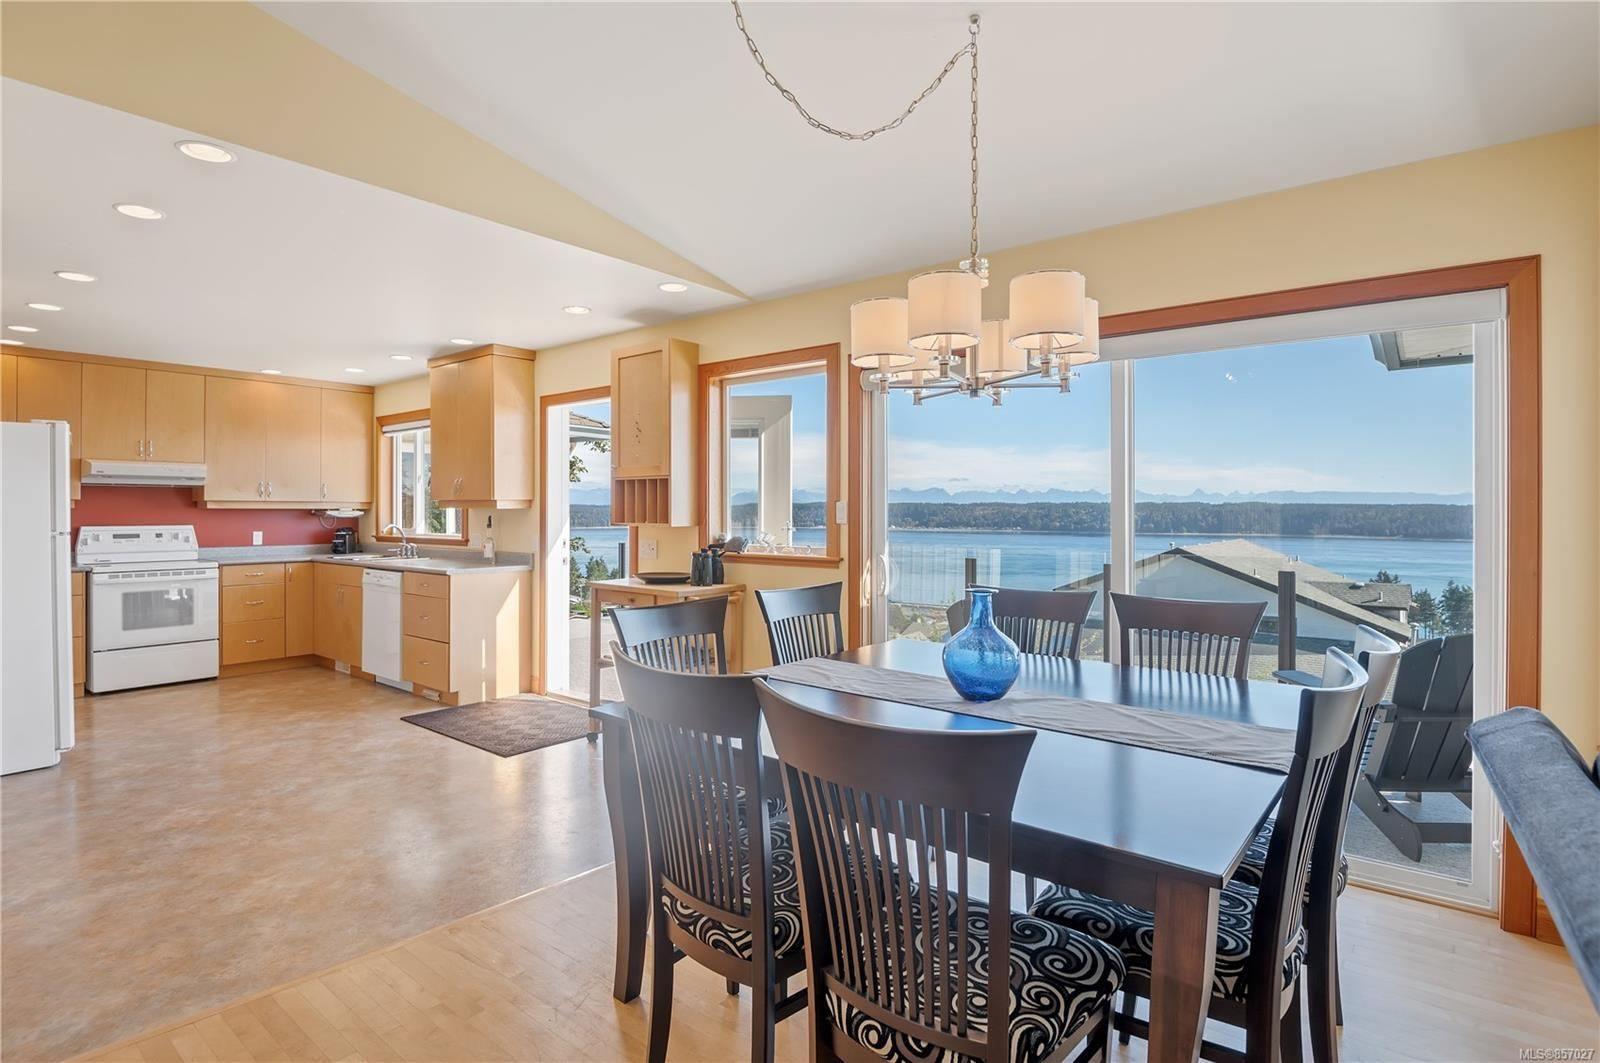 Photo 11: Photos: 253 S Alder St in : CR Campbell River South House for sale (Campbell River)  : MLS®# 857027